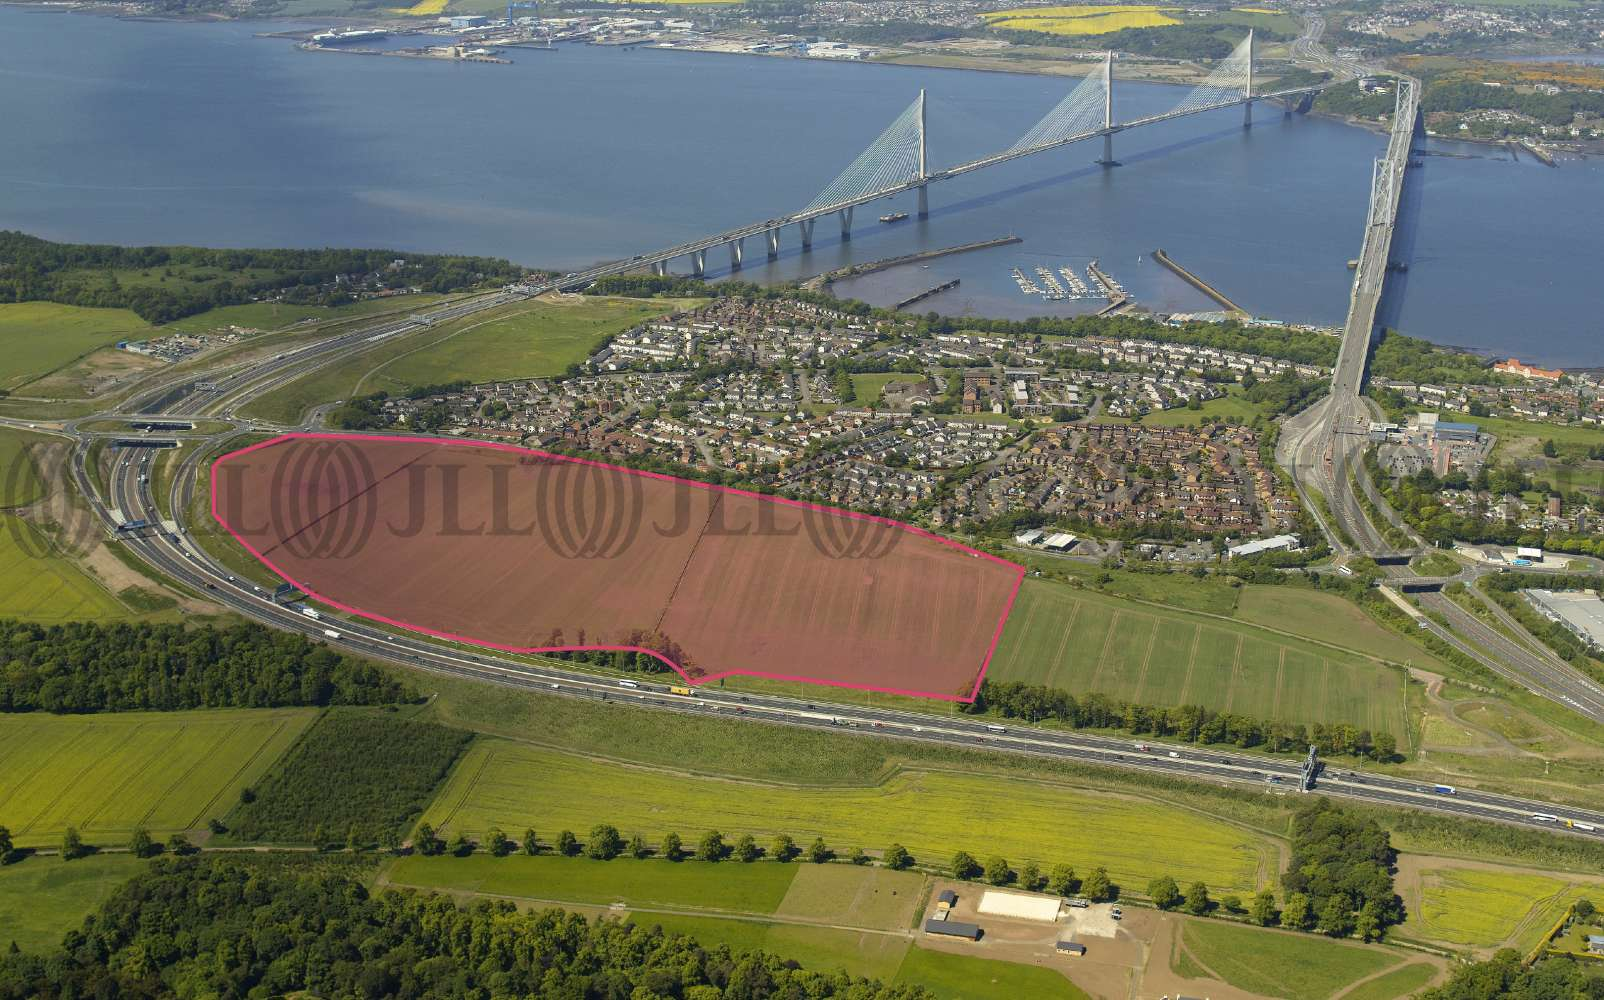 Land South queensferry, EH30 9YJ - Builyeon Road